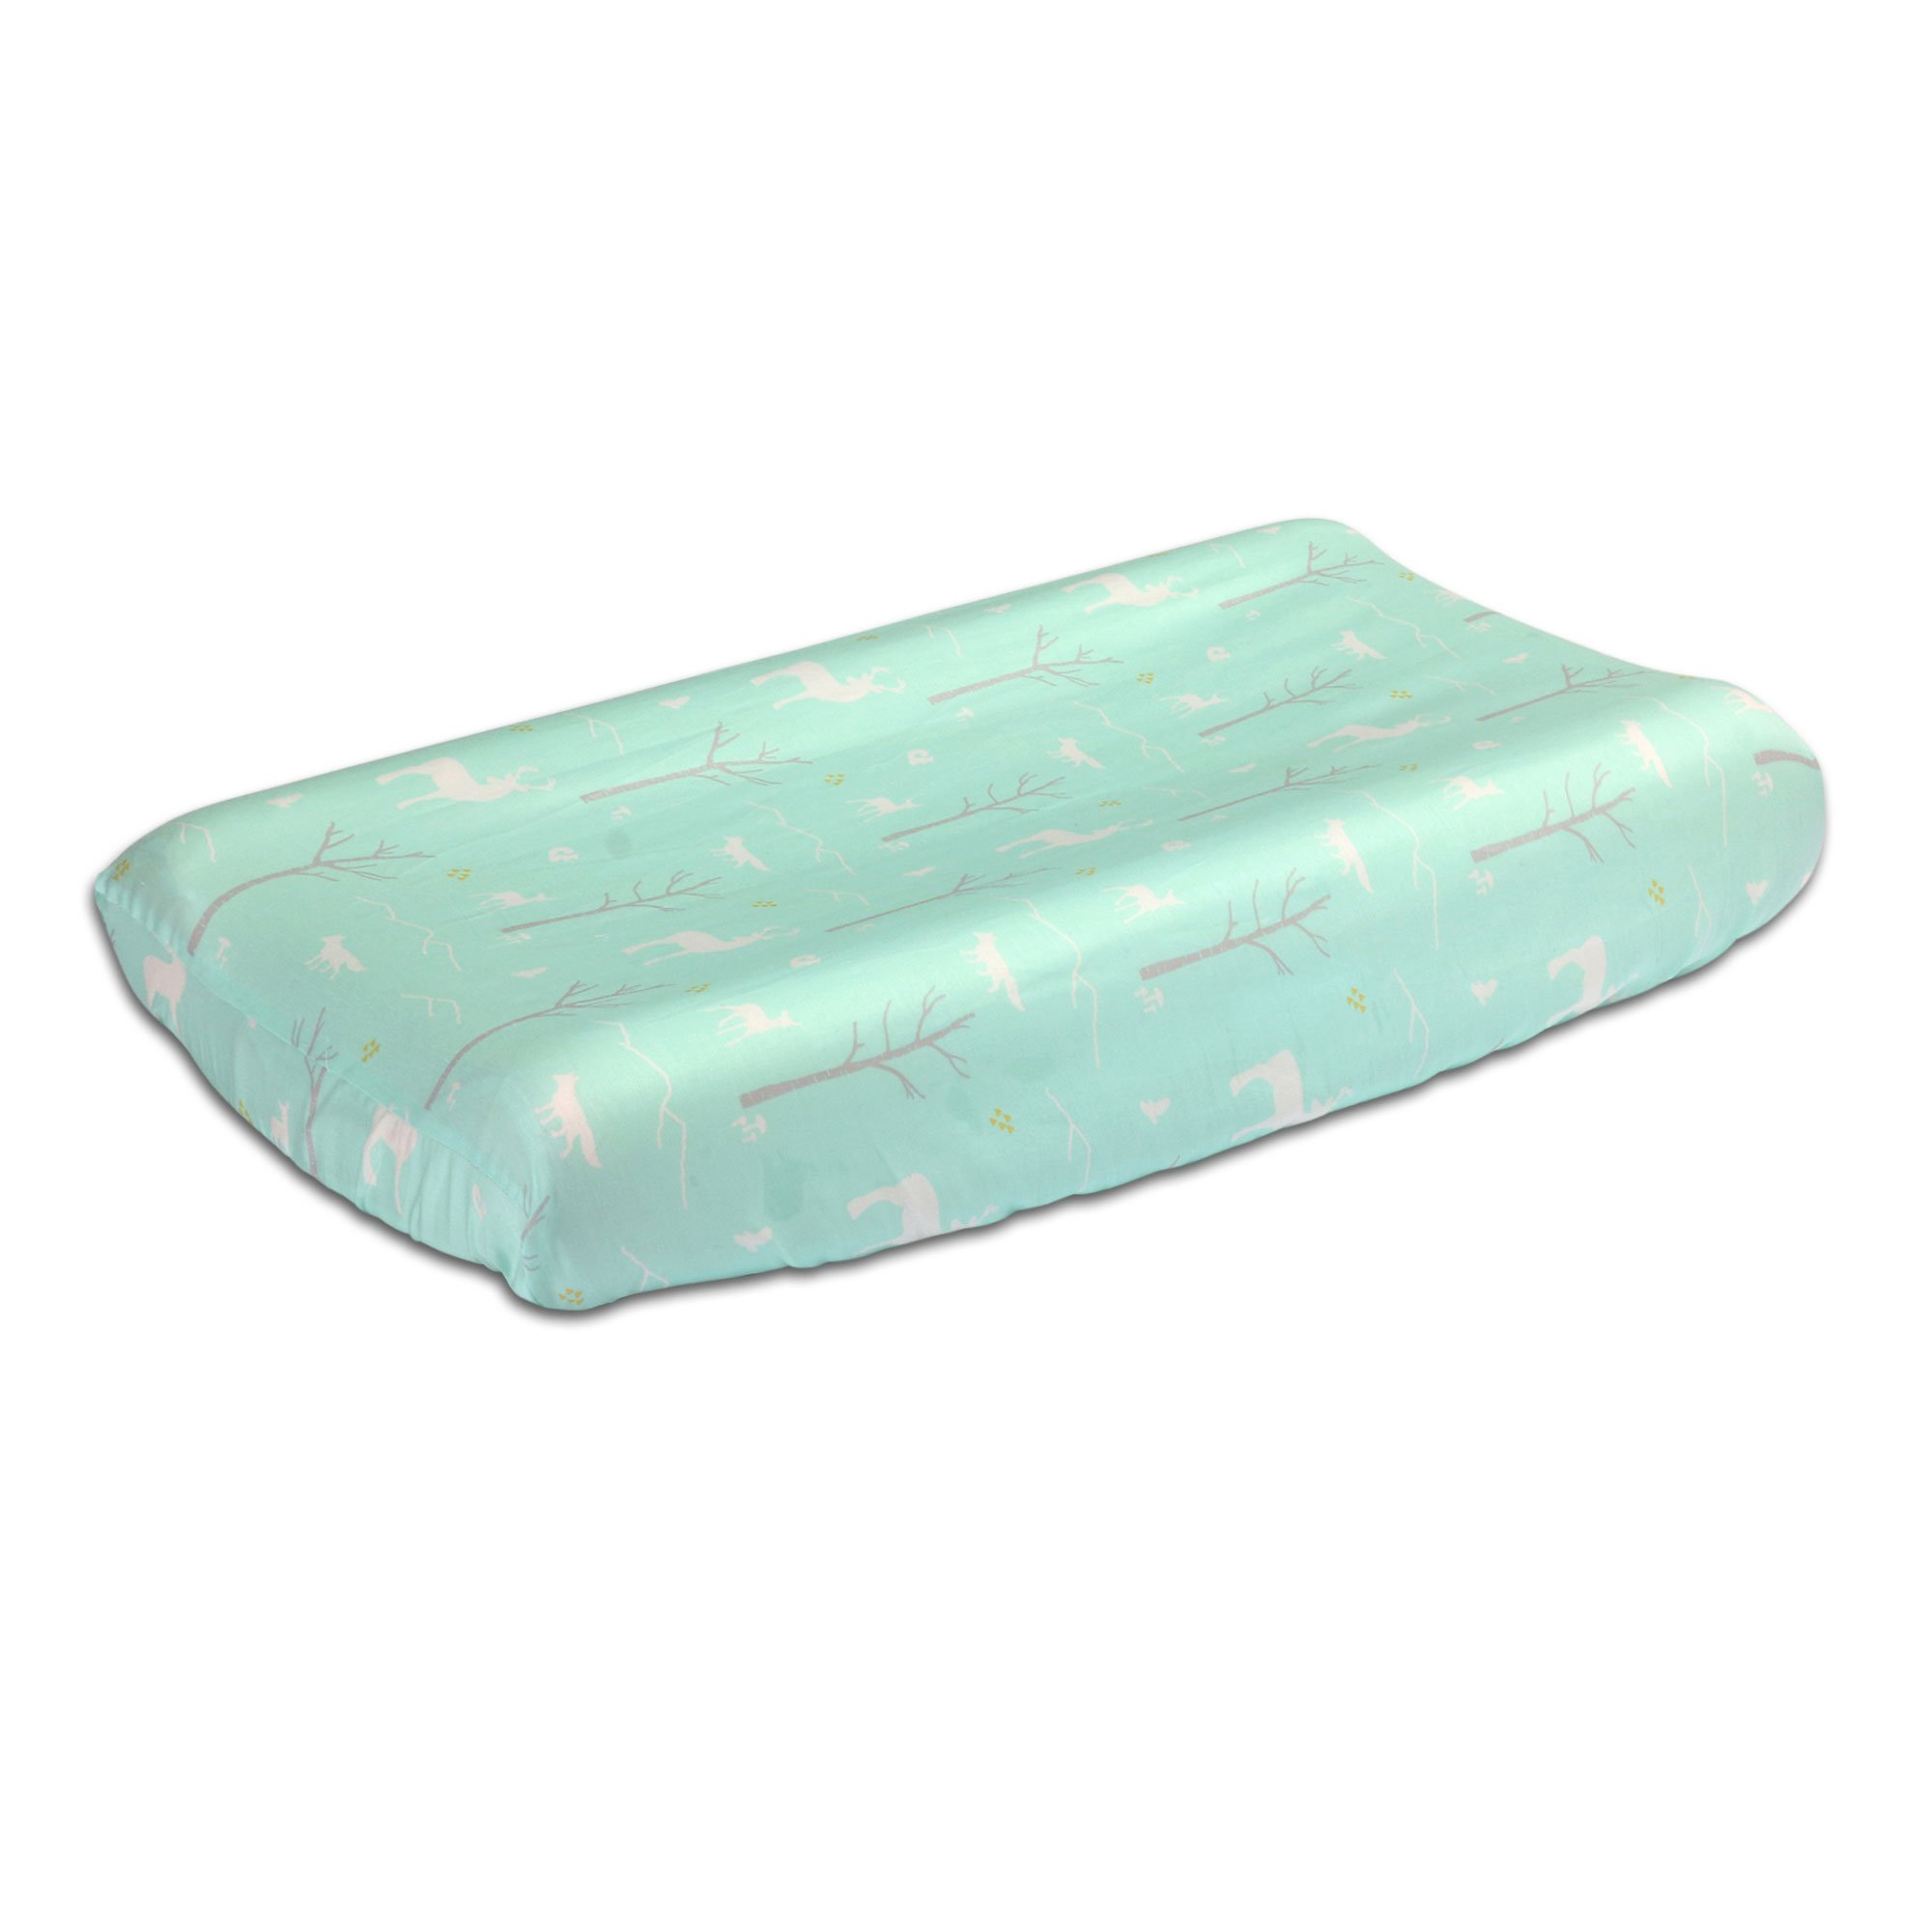 Mint Green Woodland Theme Baby Changing Pad Cover by The Peanut Shell